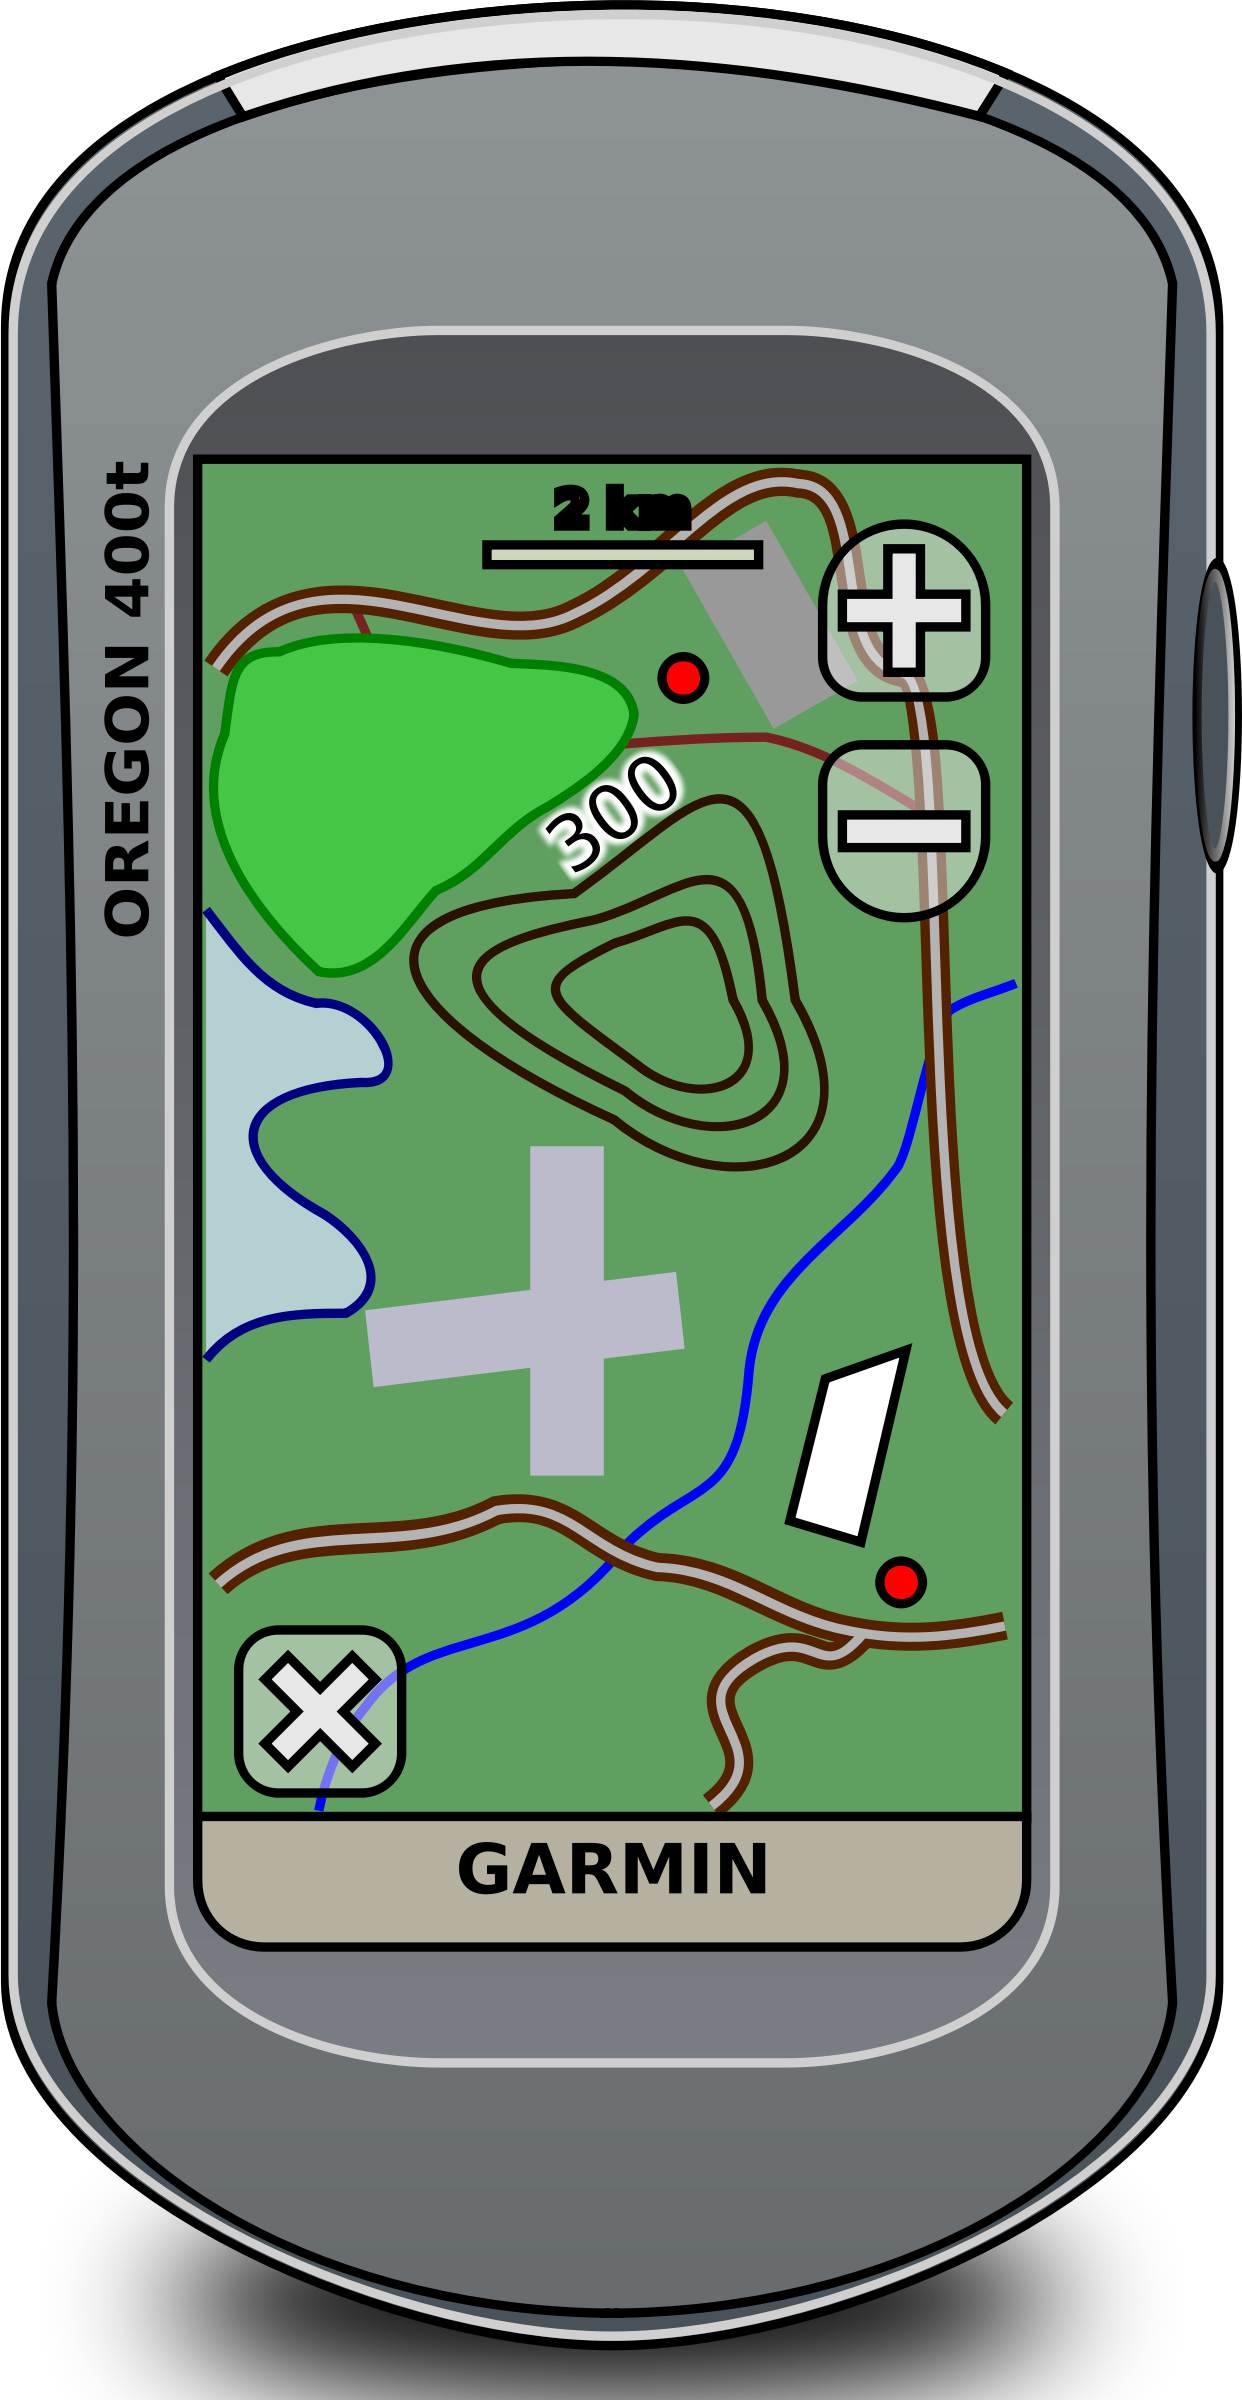 Vehicle Tracking Device >> Garmin clipart - Clipground